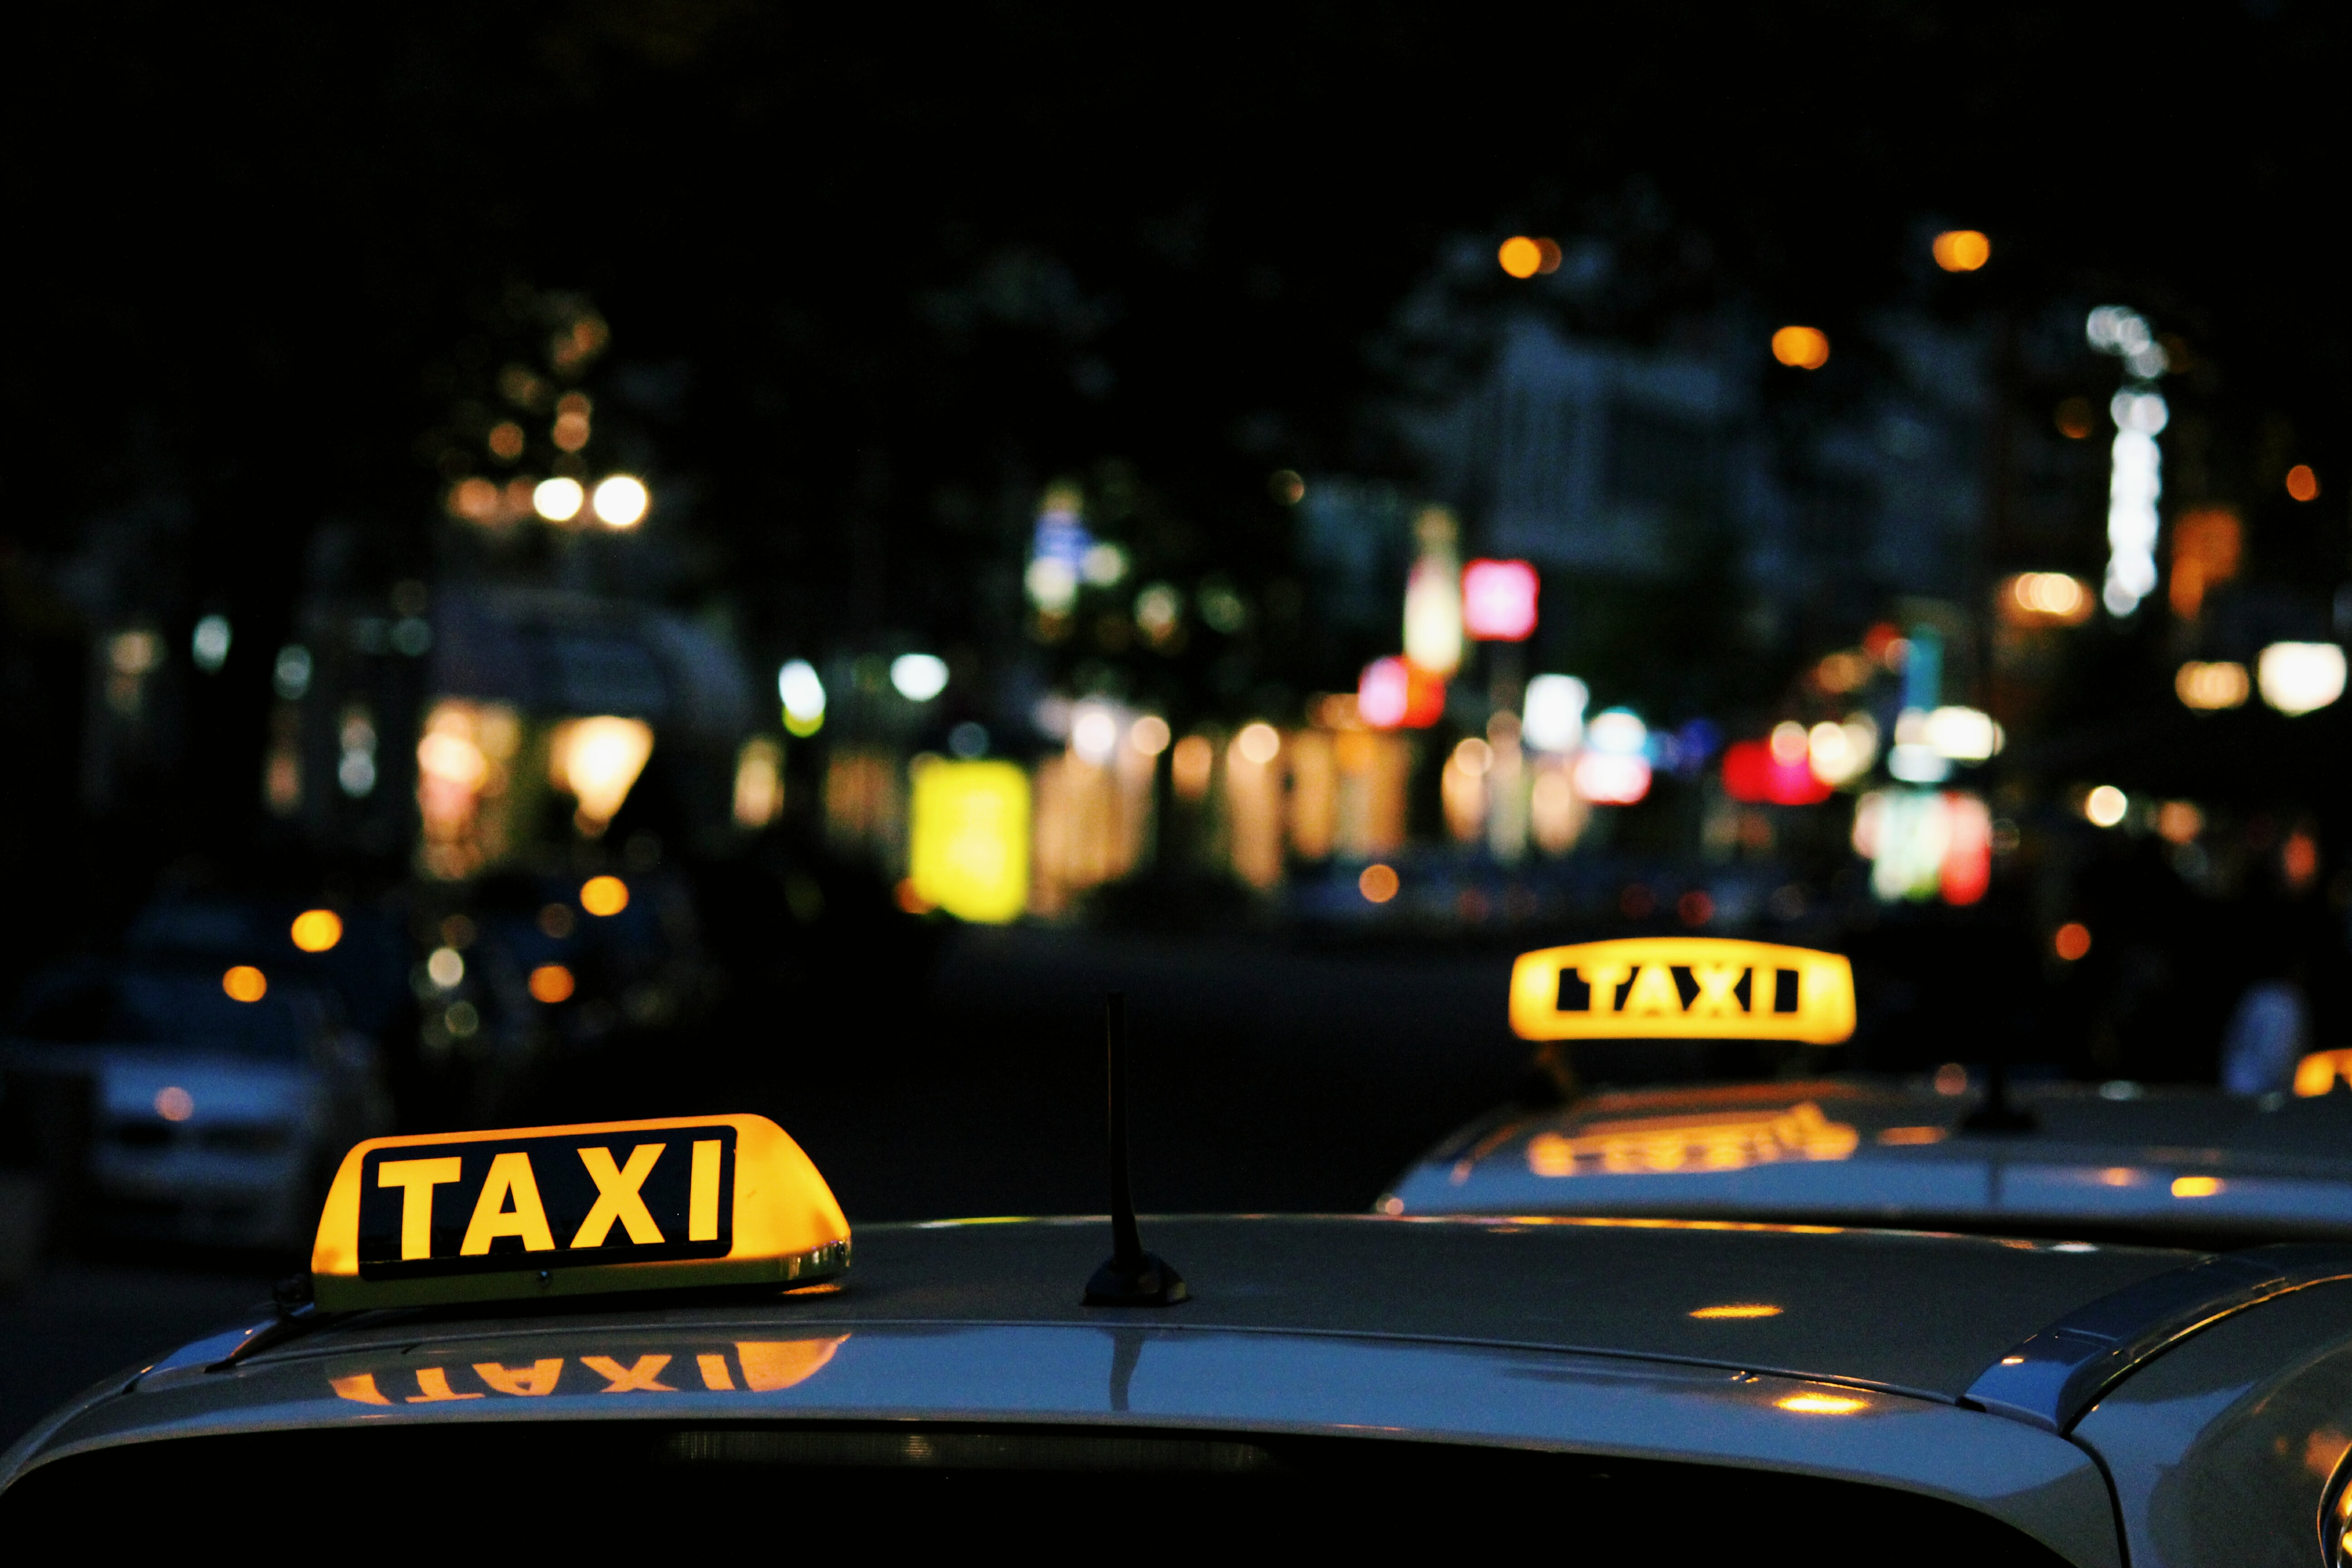 FORMATION TAXI 14H MOBILITEE